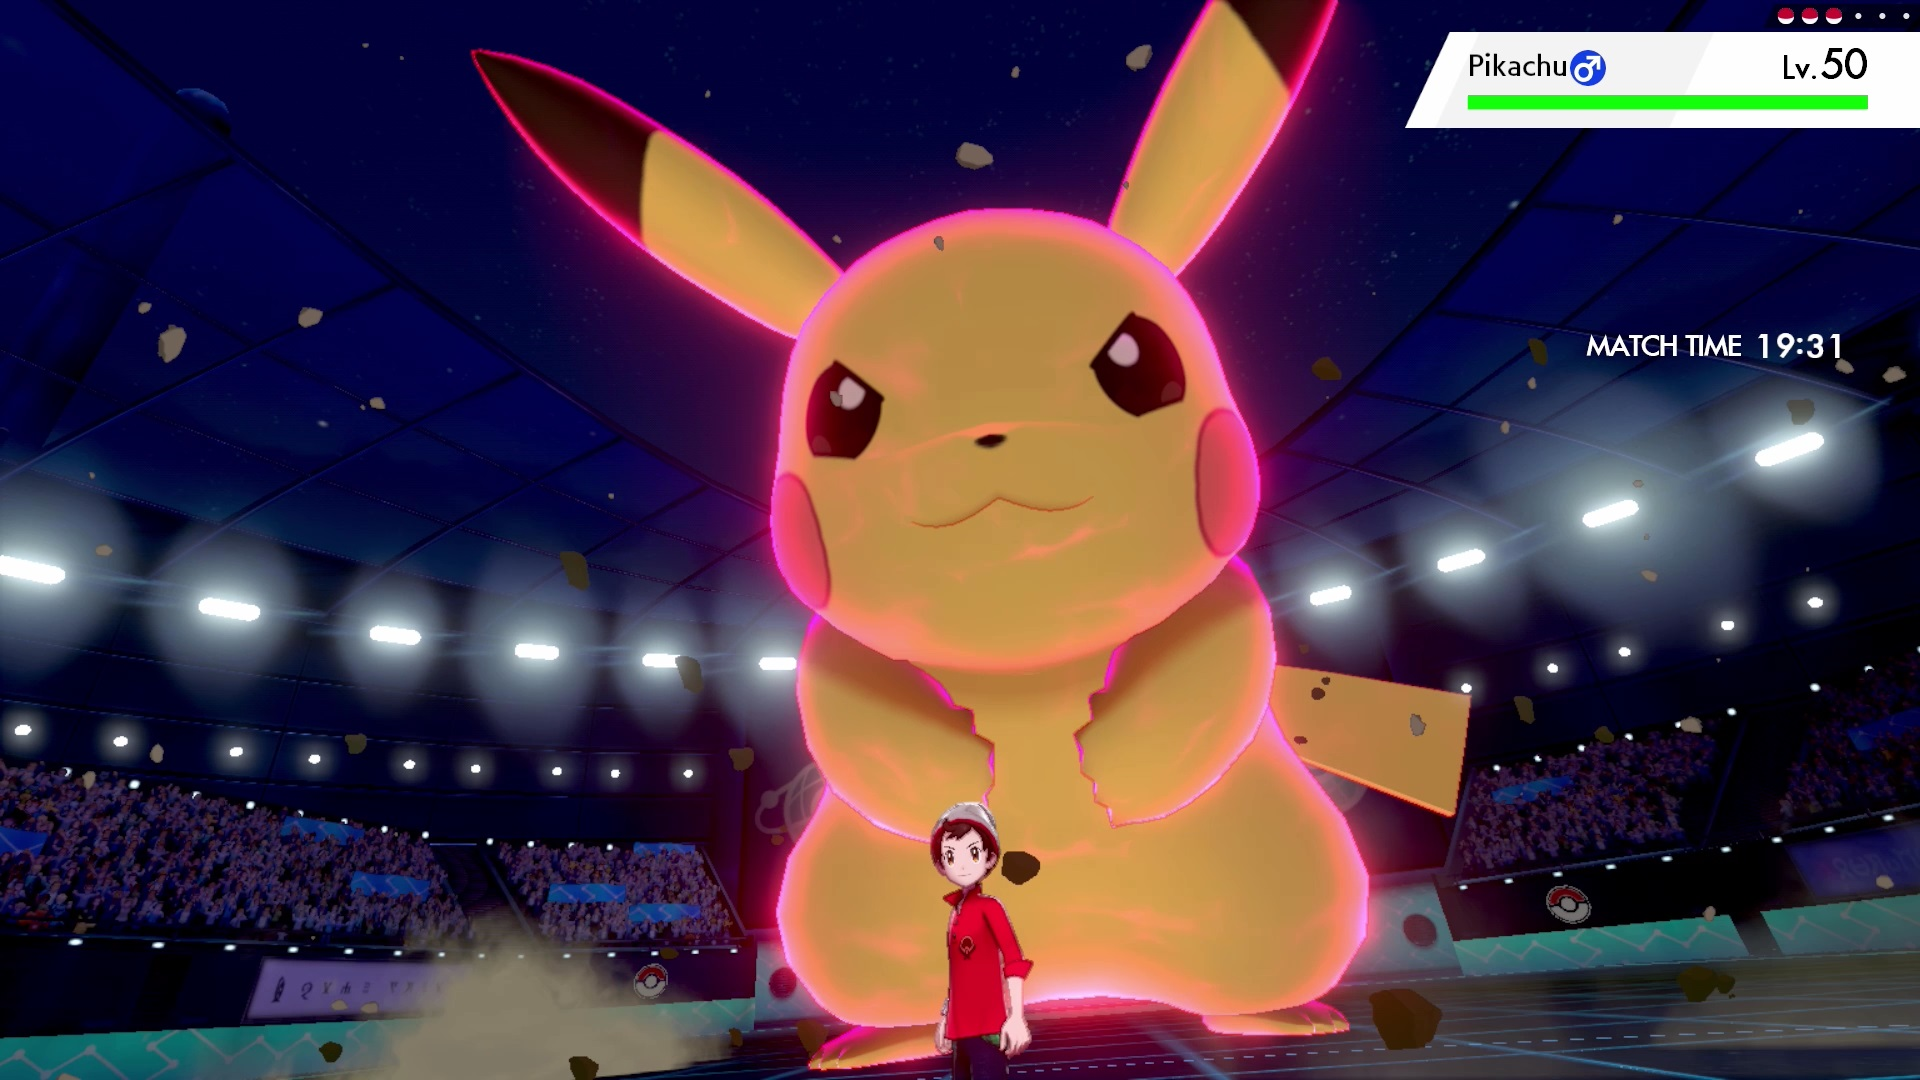 pokemon sword and shield dynamax pikachu